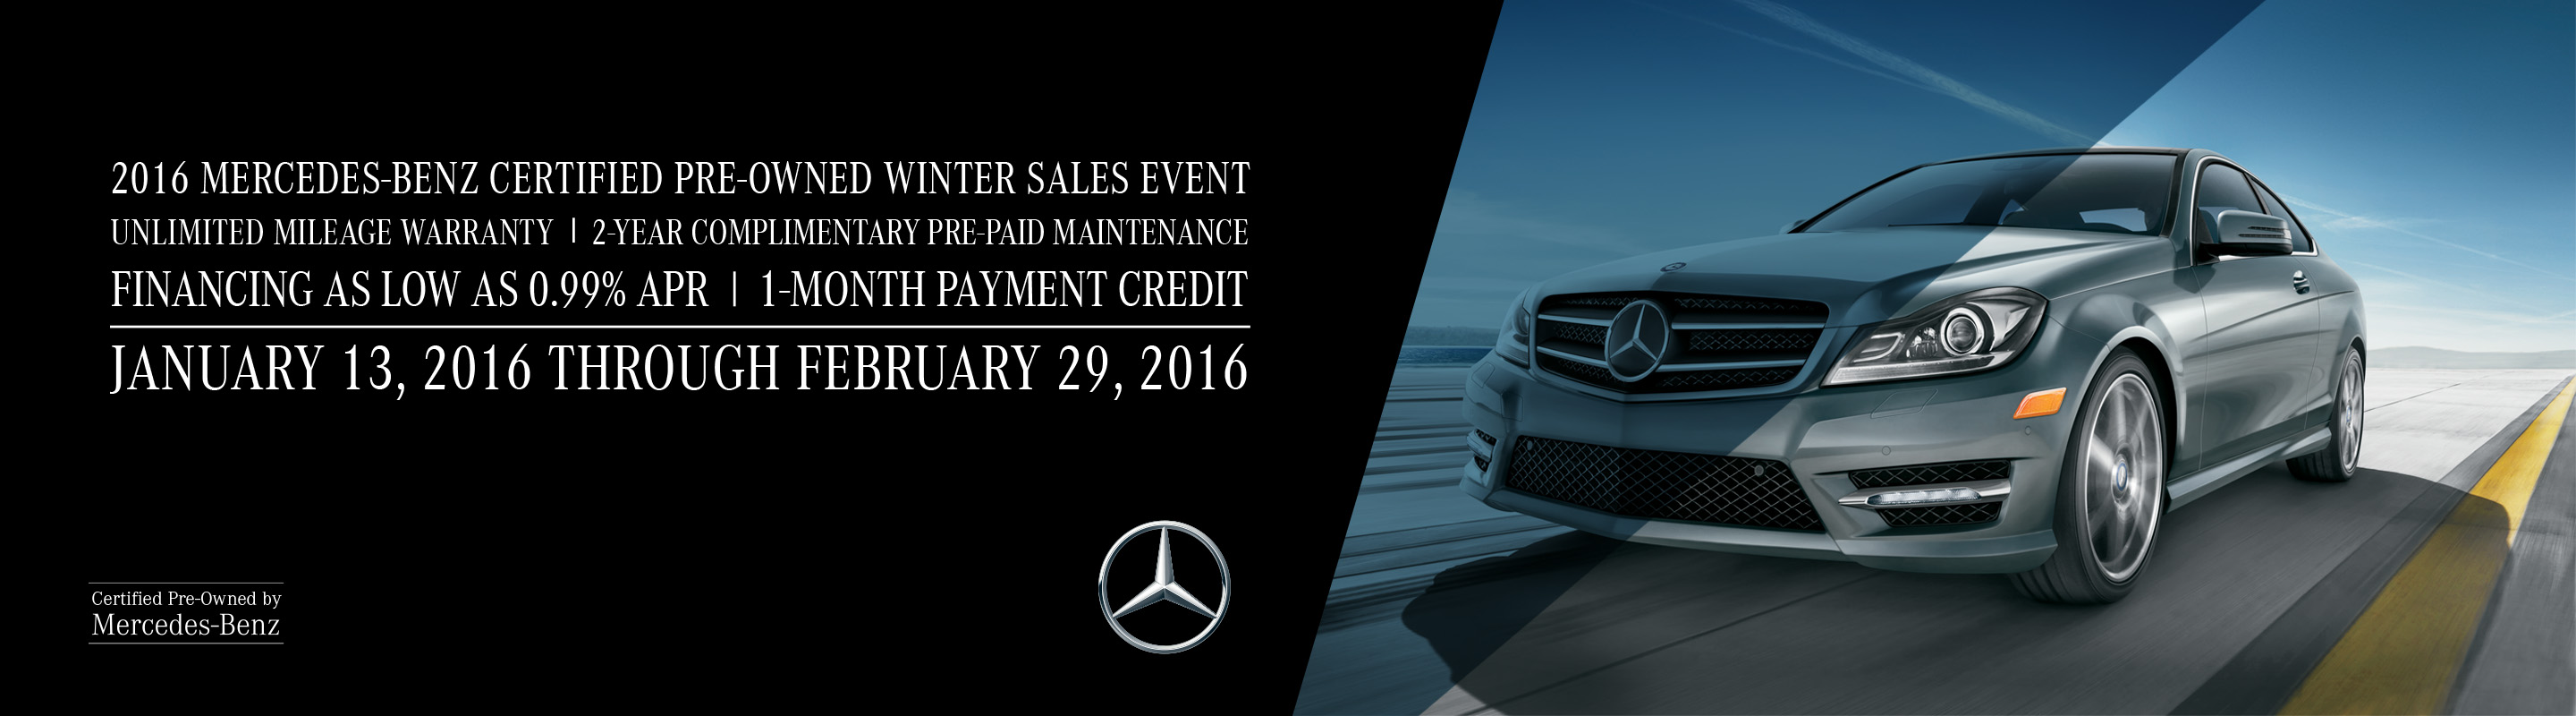 Pre owned mercedes benz charleston sc for Mercedes benz charleston sc